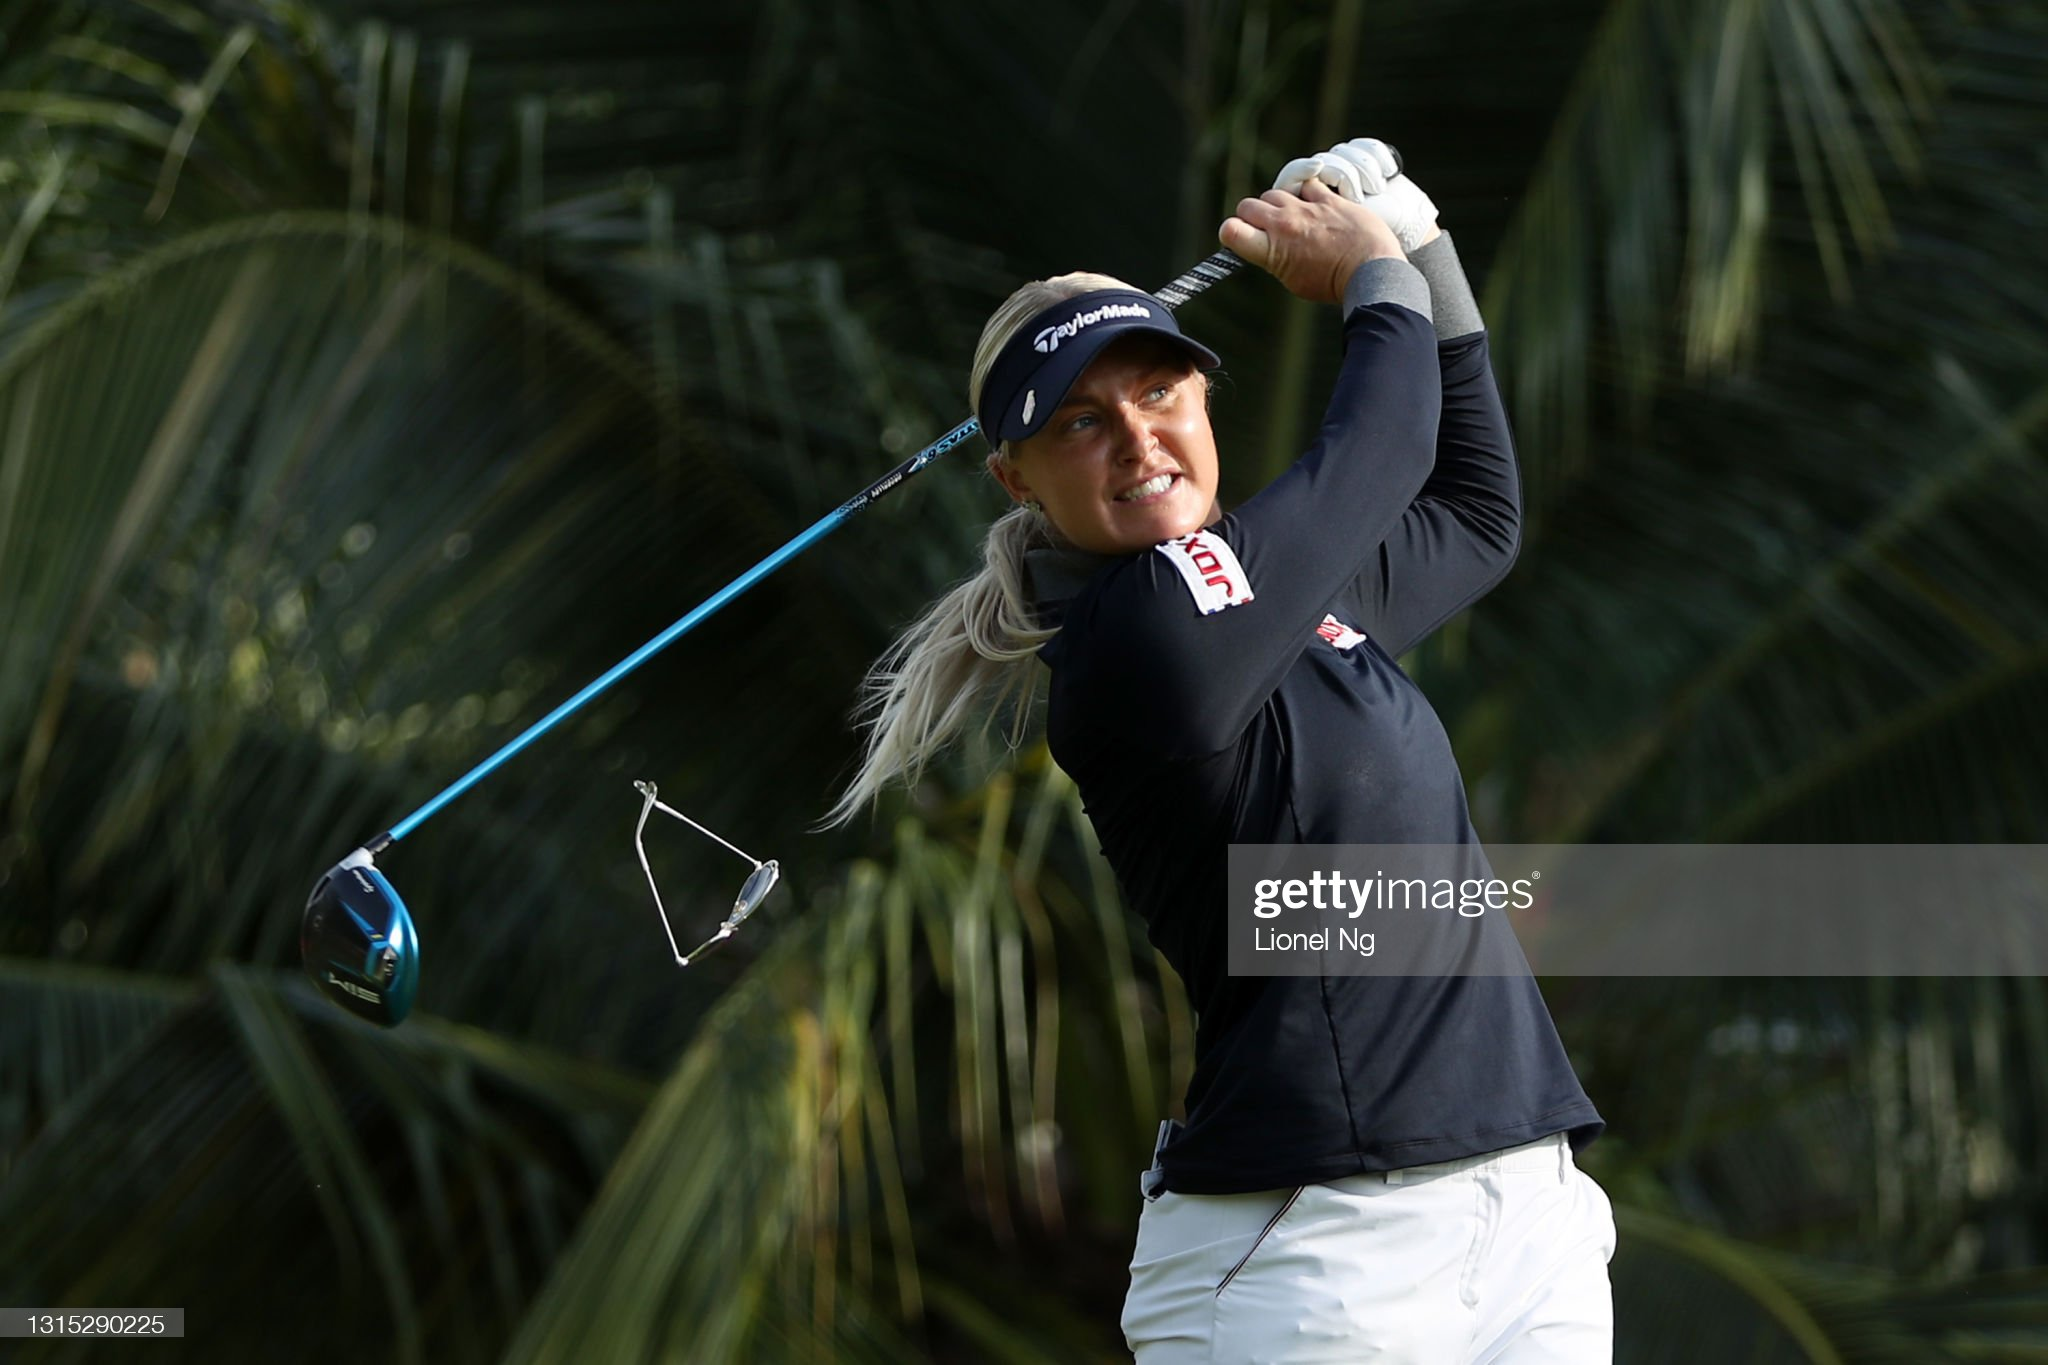 https://media.gettyimages.com/photos/charley-hull-of-england-hits-her-tee-shot-on-the-2nd-hole-during-the-picture-id1315290225?s=2048x2048